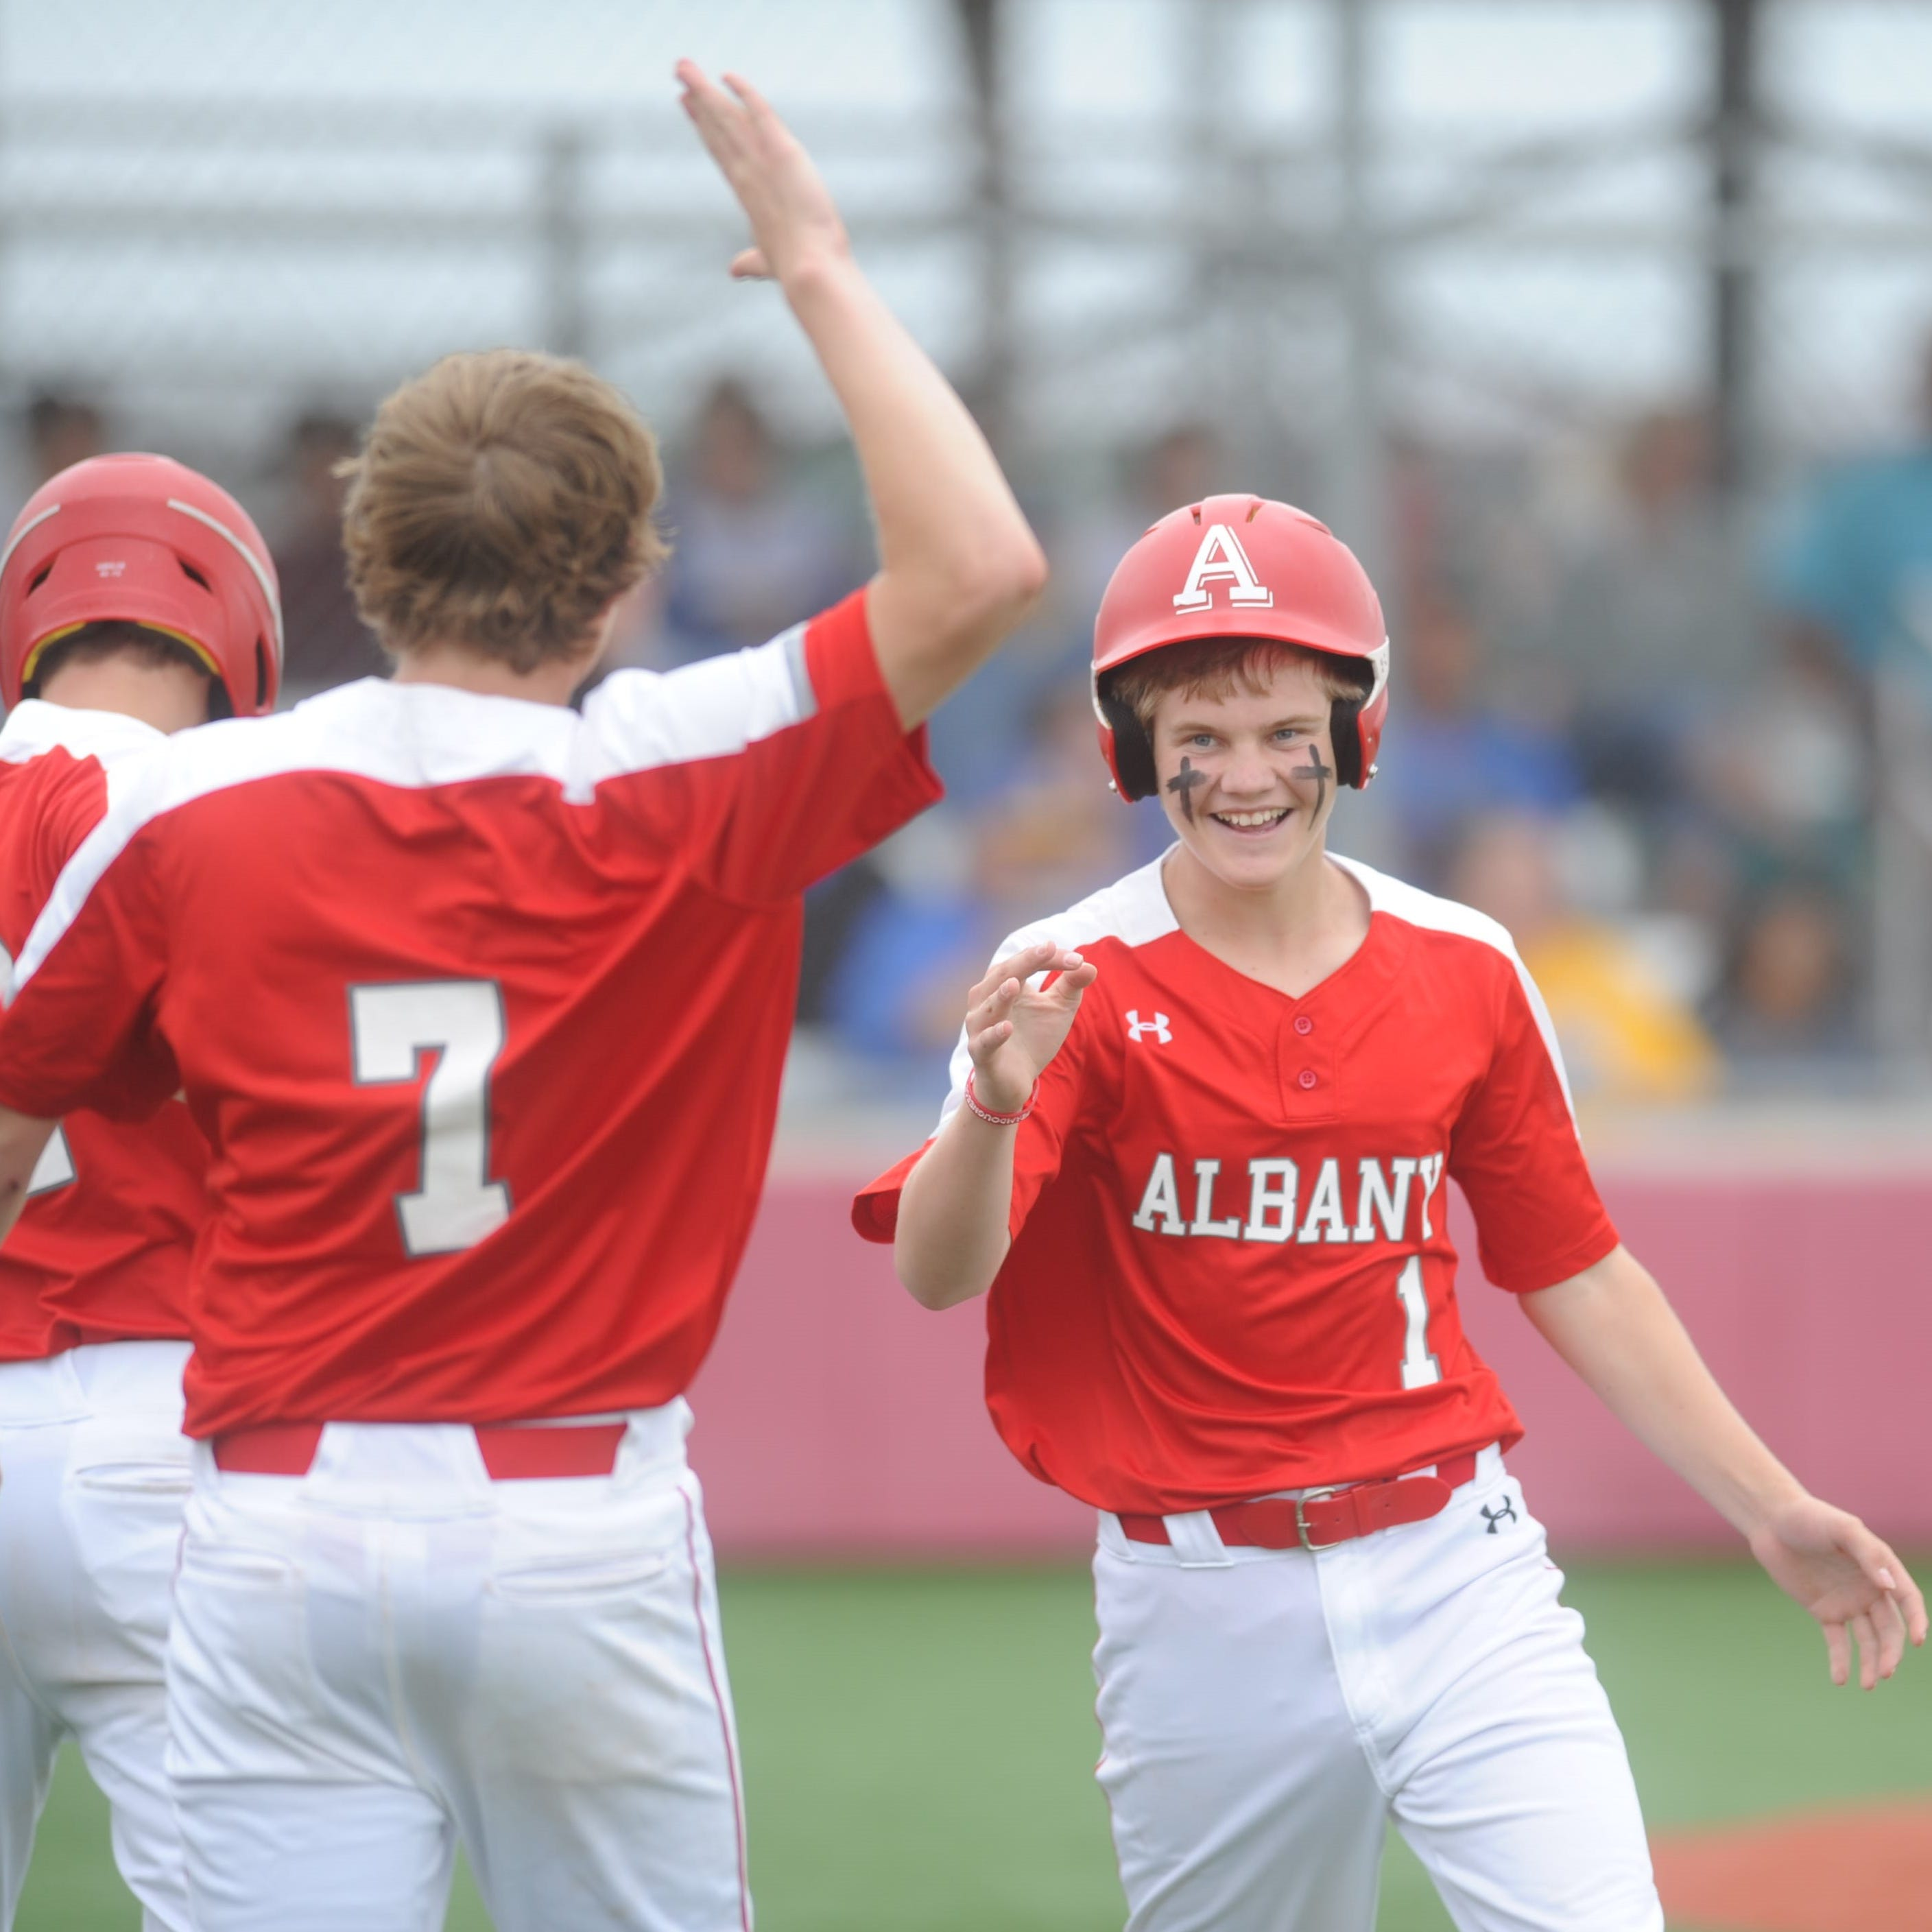 Albany baseball completes region semifinal series sweep of Hale Center